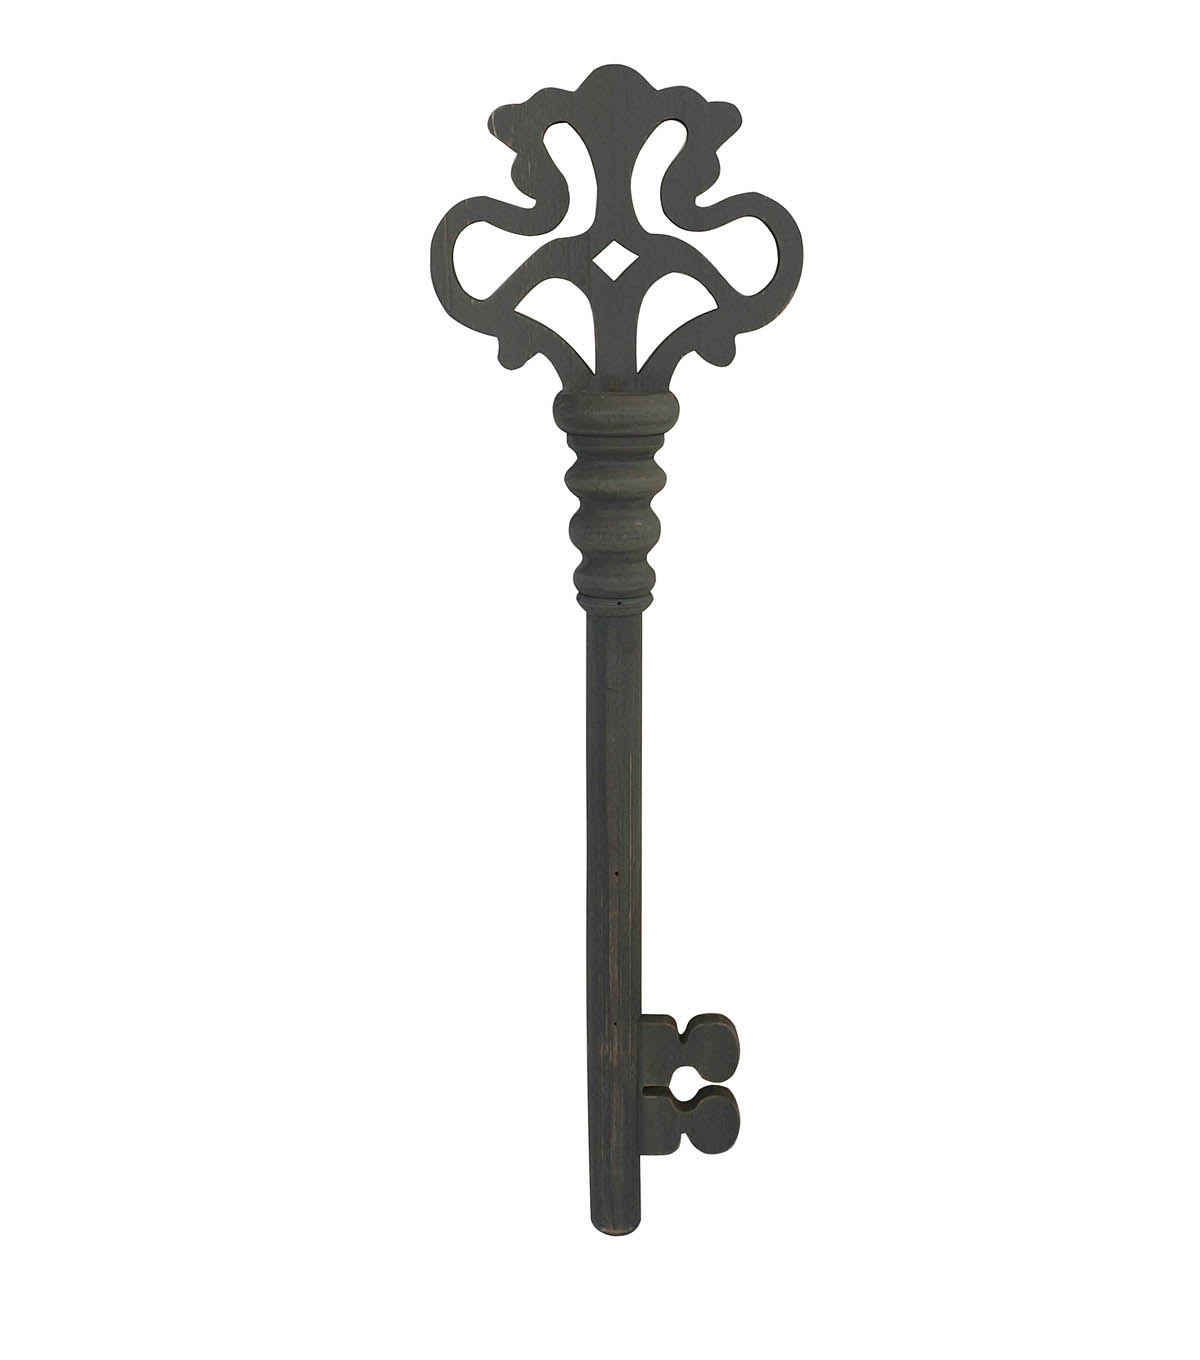 Simply Autumn Wooden Key Wall Decor Gray Inside Black Metal Key Wall Decor (View 23 of 30)